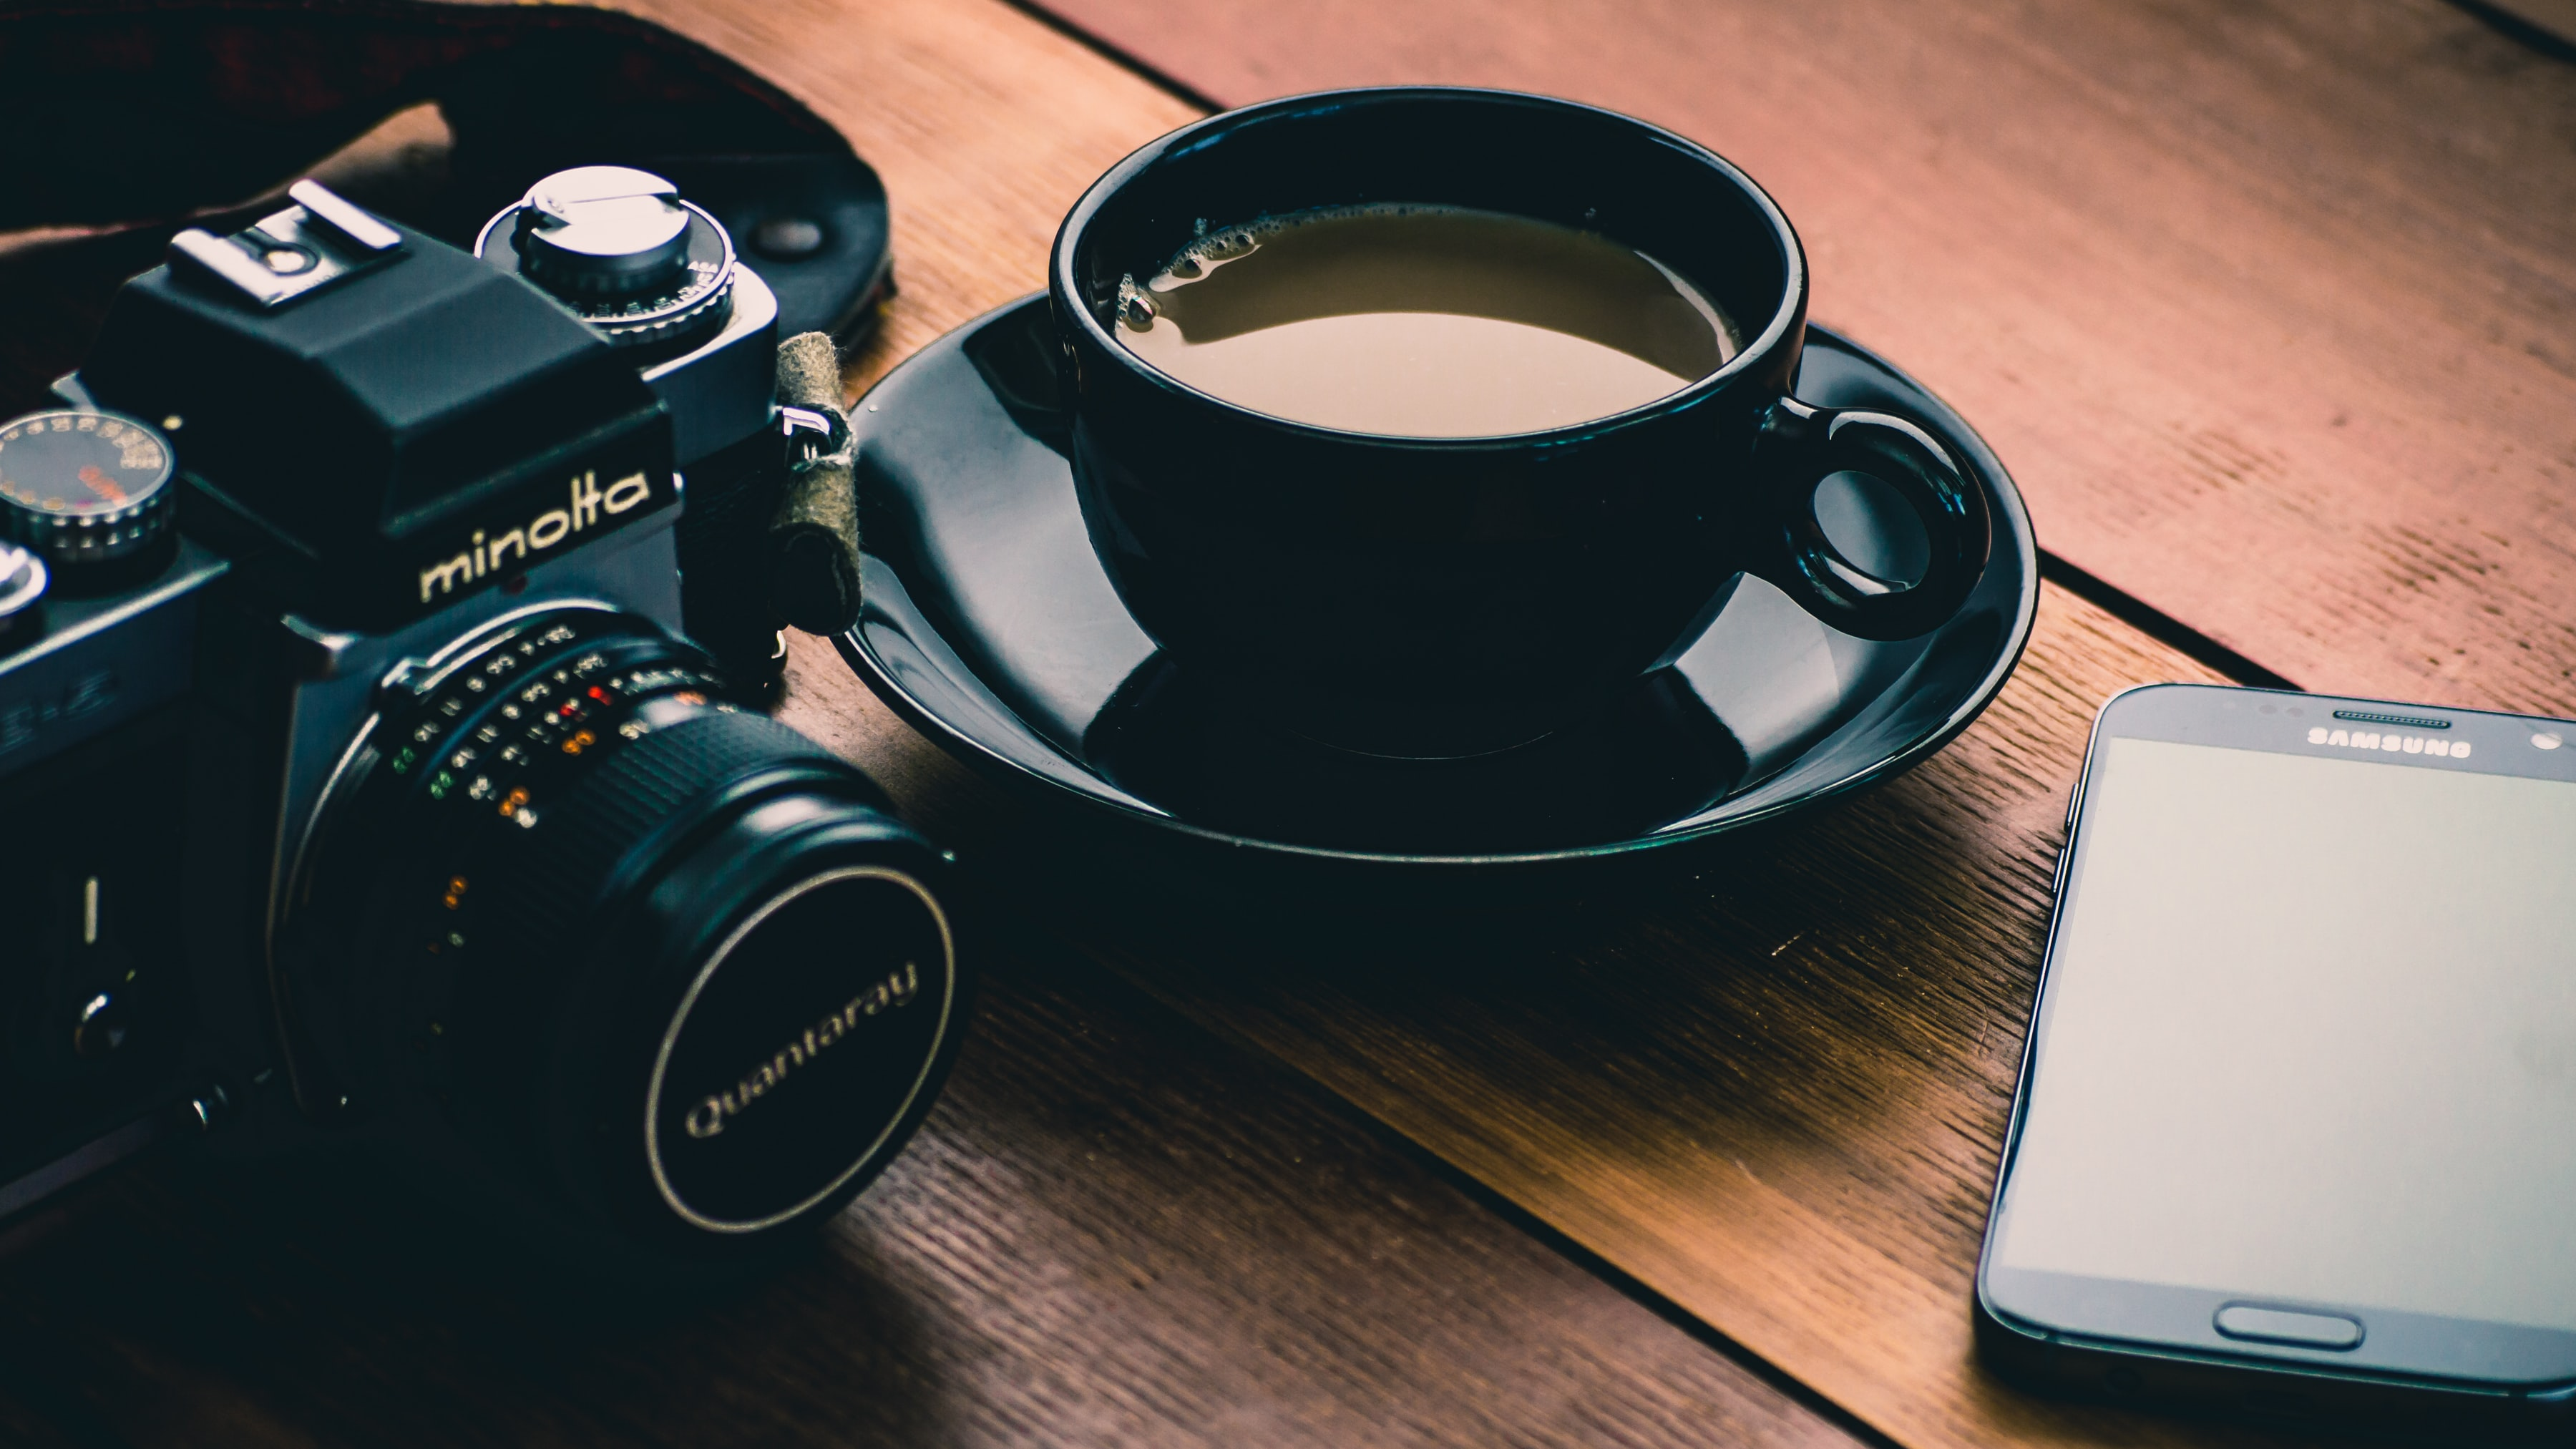 black Minolta camera beside coffee filled black ceramic cup